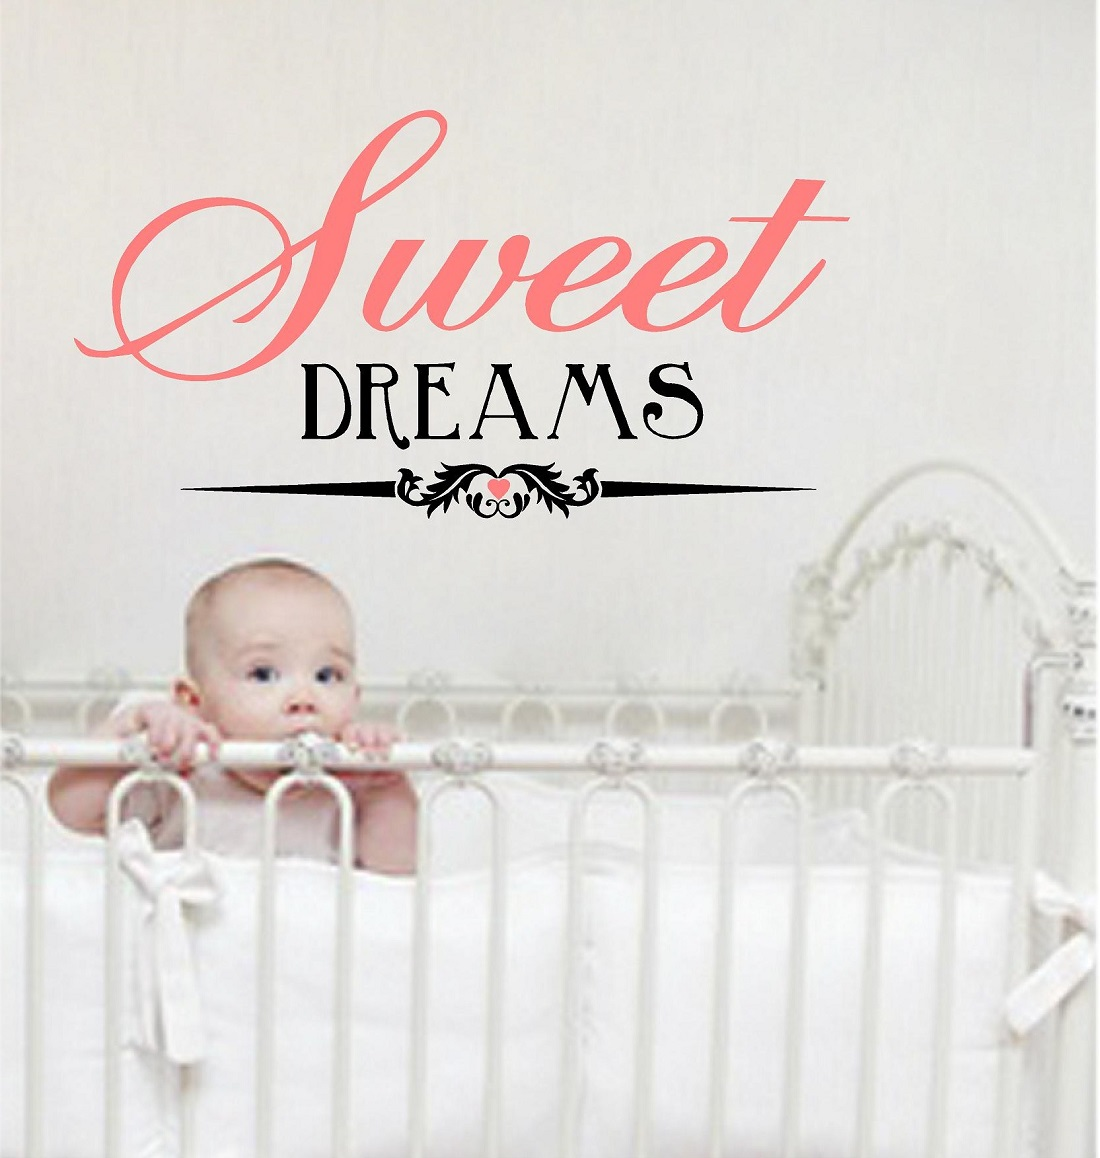 sweet dreams wall quotes baby girl quotes baby boy words